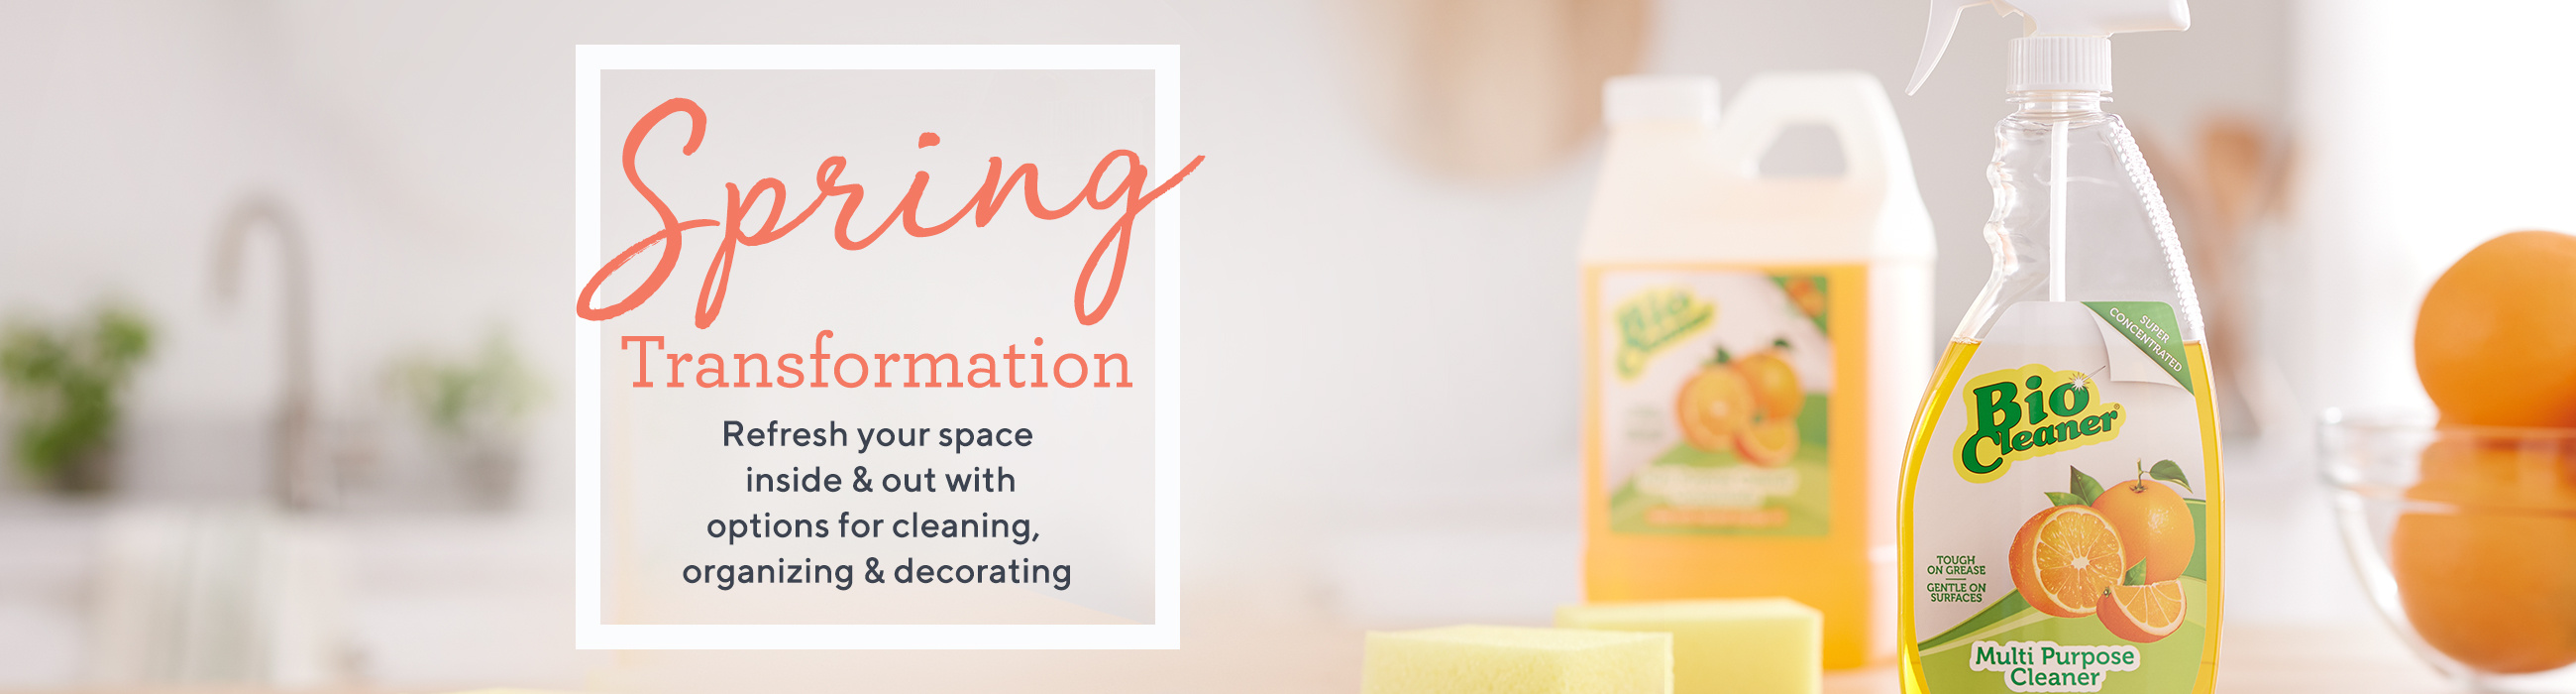 Spring Transformation — Refresh your space inside & out with options for cleaning, organizing & decorating